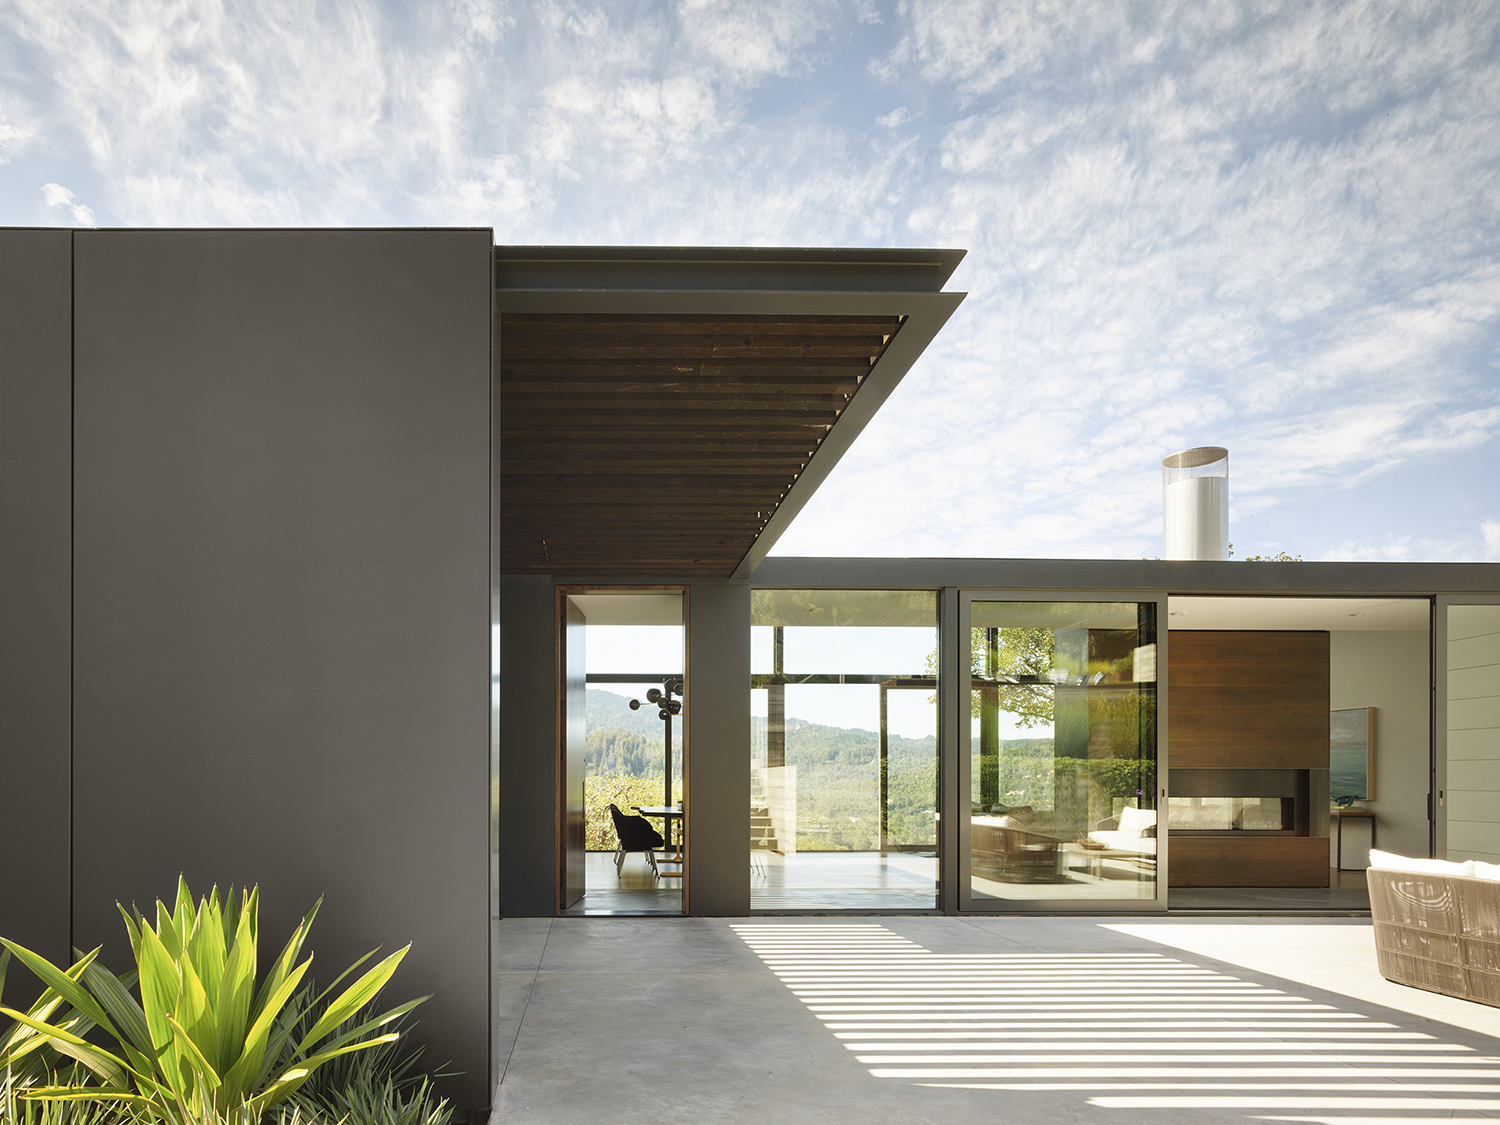 Ross Hillside modern home outside view with terrace area